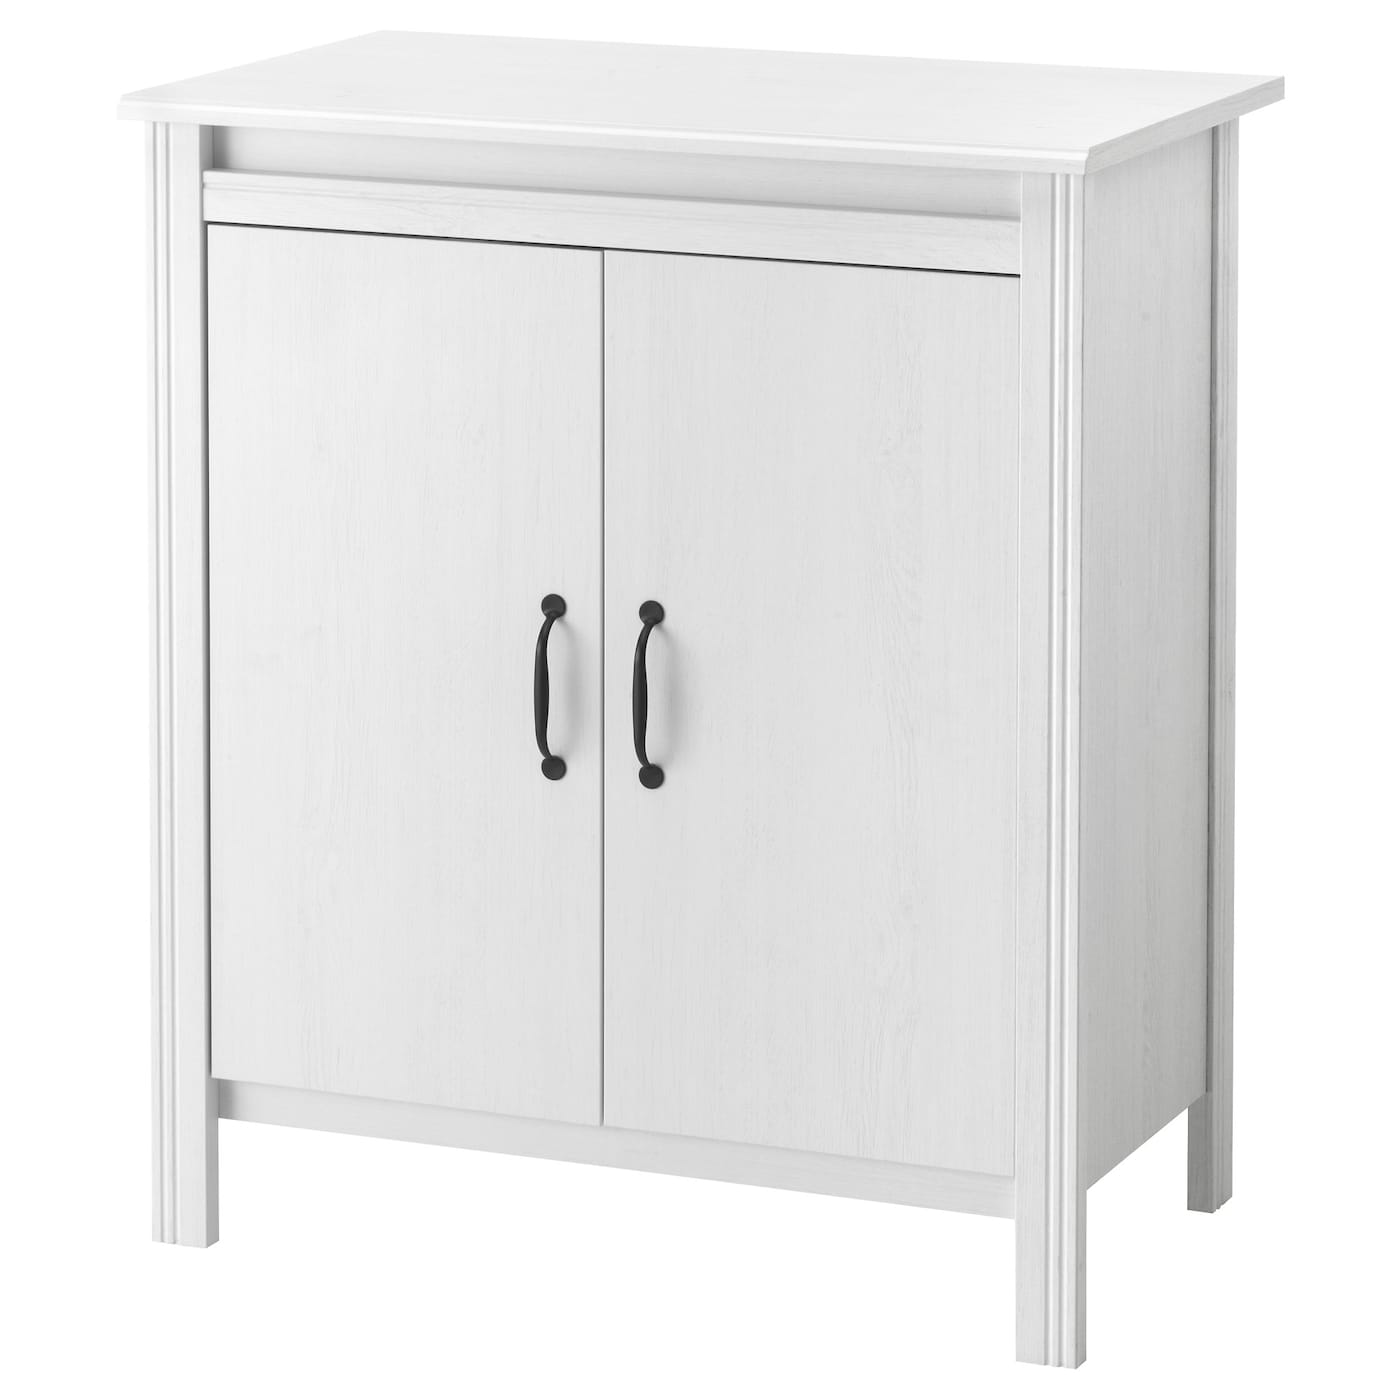 Brusali cabinet with doors white 80x93 cm ikea for Sideboard 2 m breit